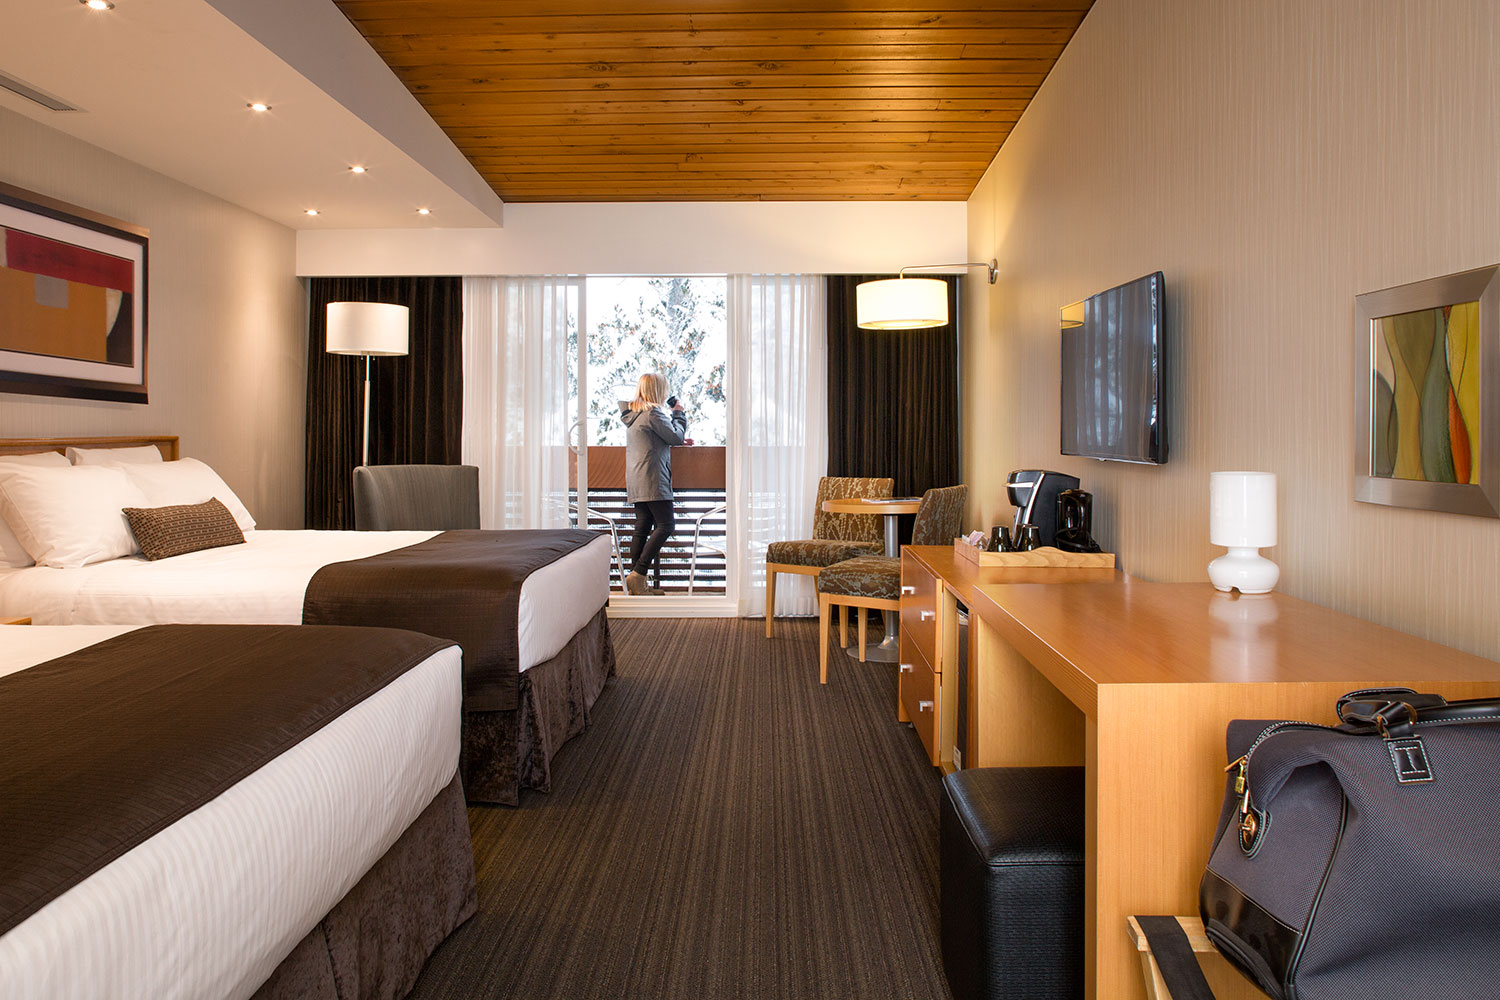 Stanard room met 2 queen bedden in de Banff Aspen Lodge